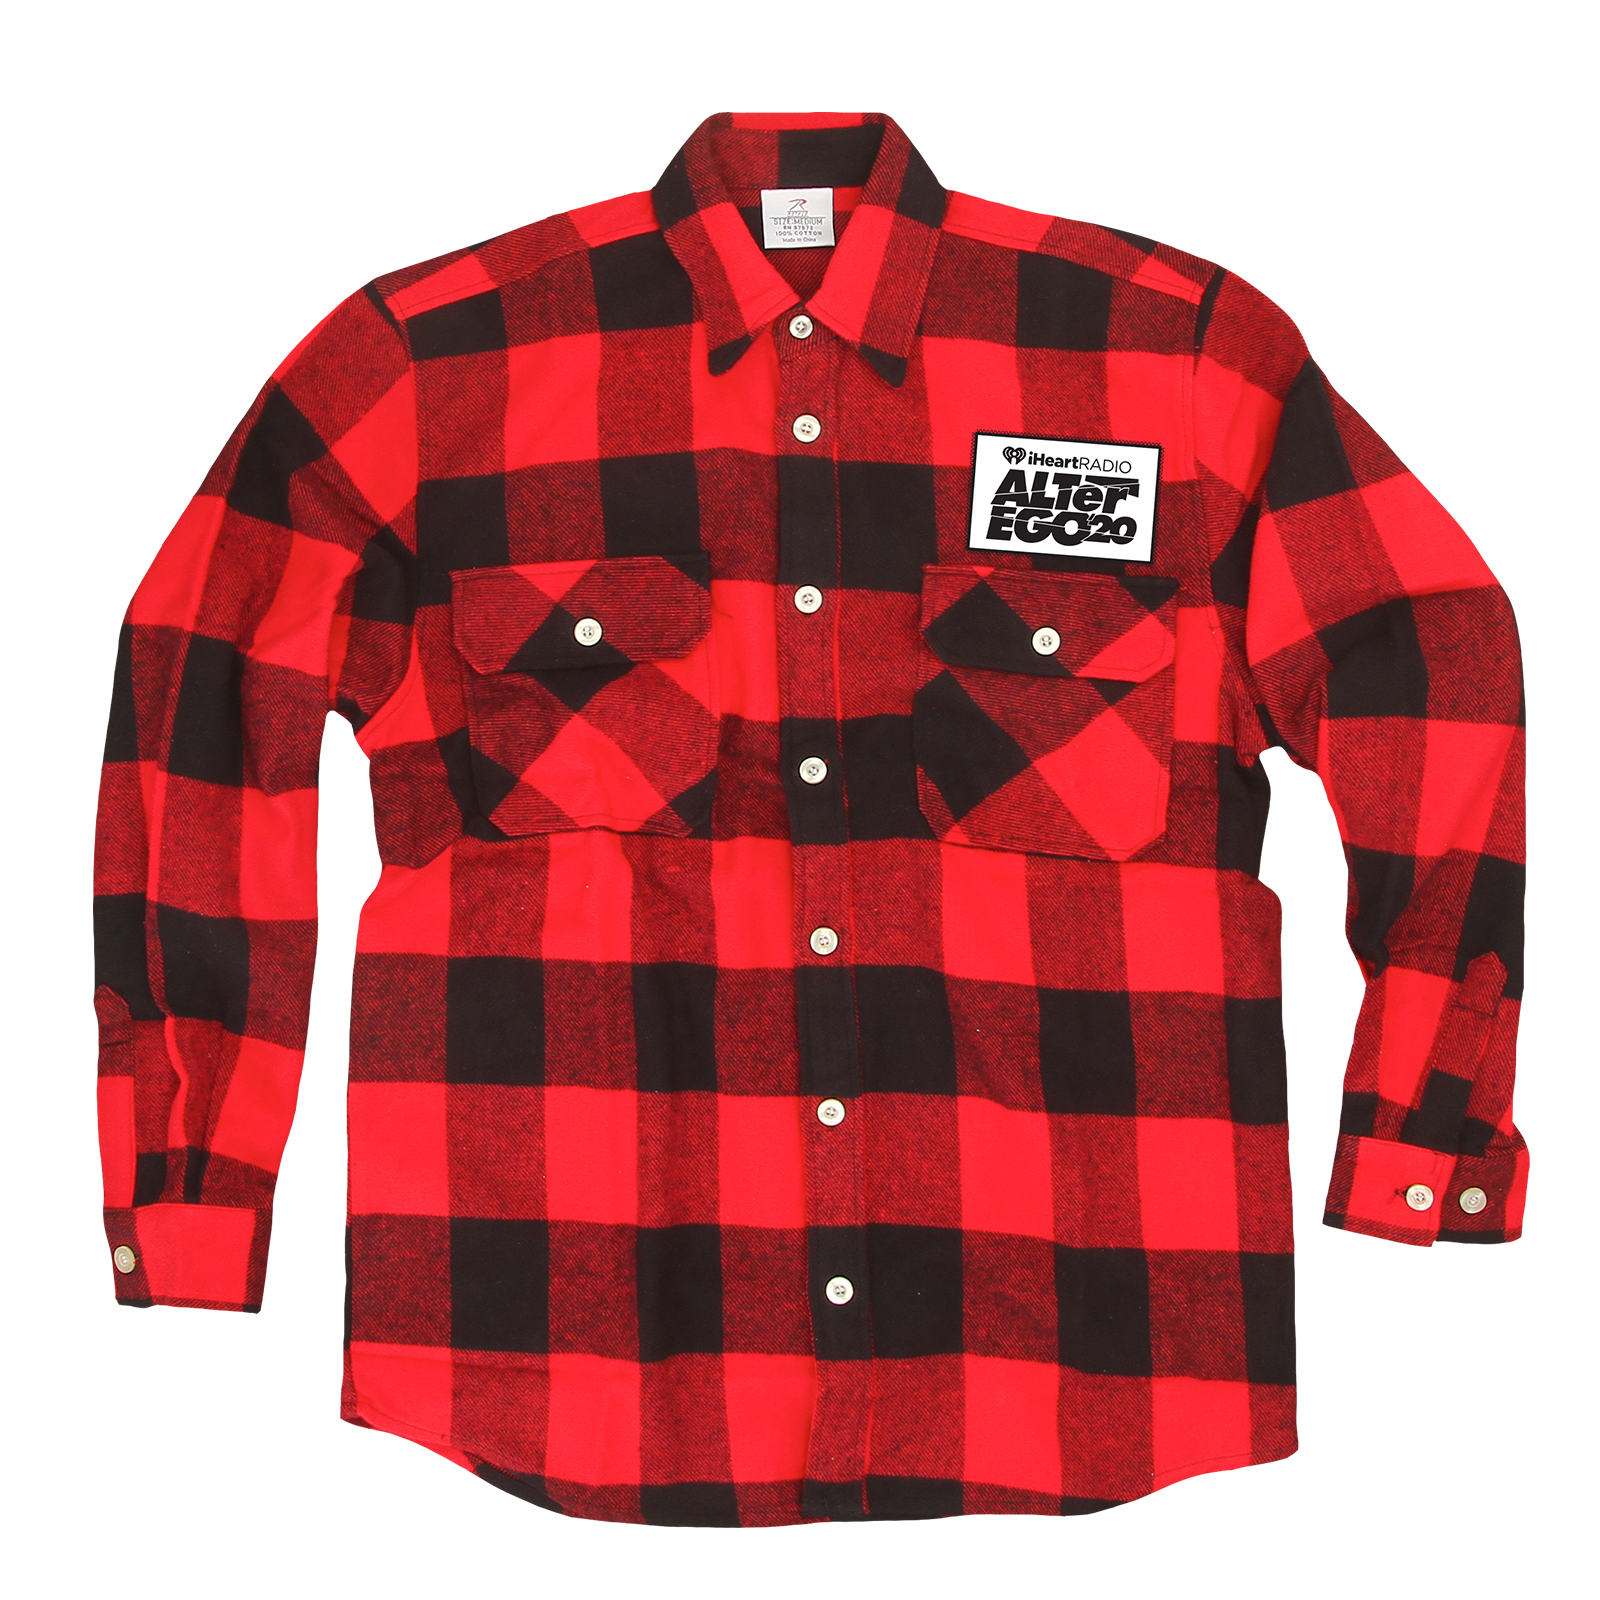 ALTer Ego '20 - Red/Black Buffalo Plaid Flannel